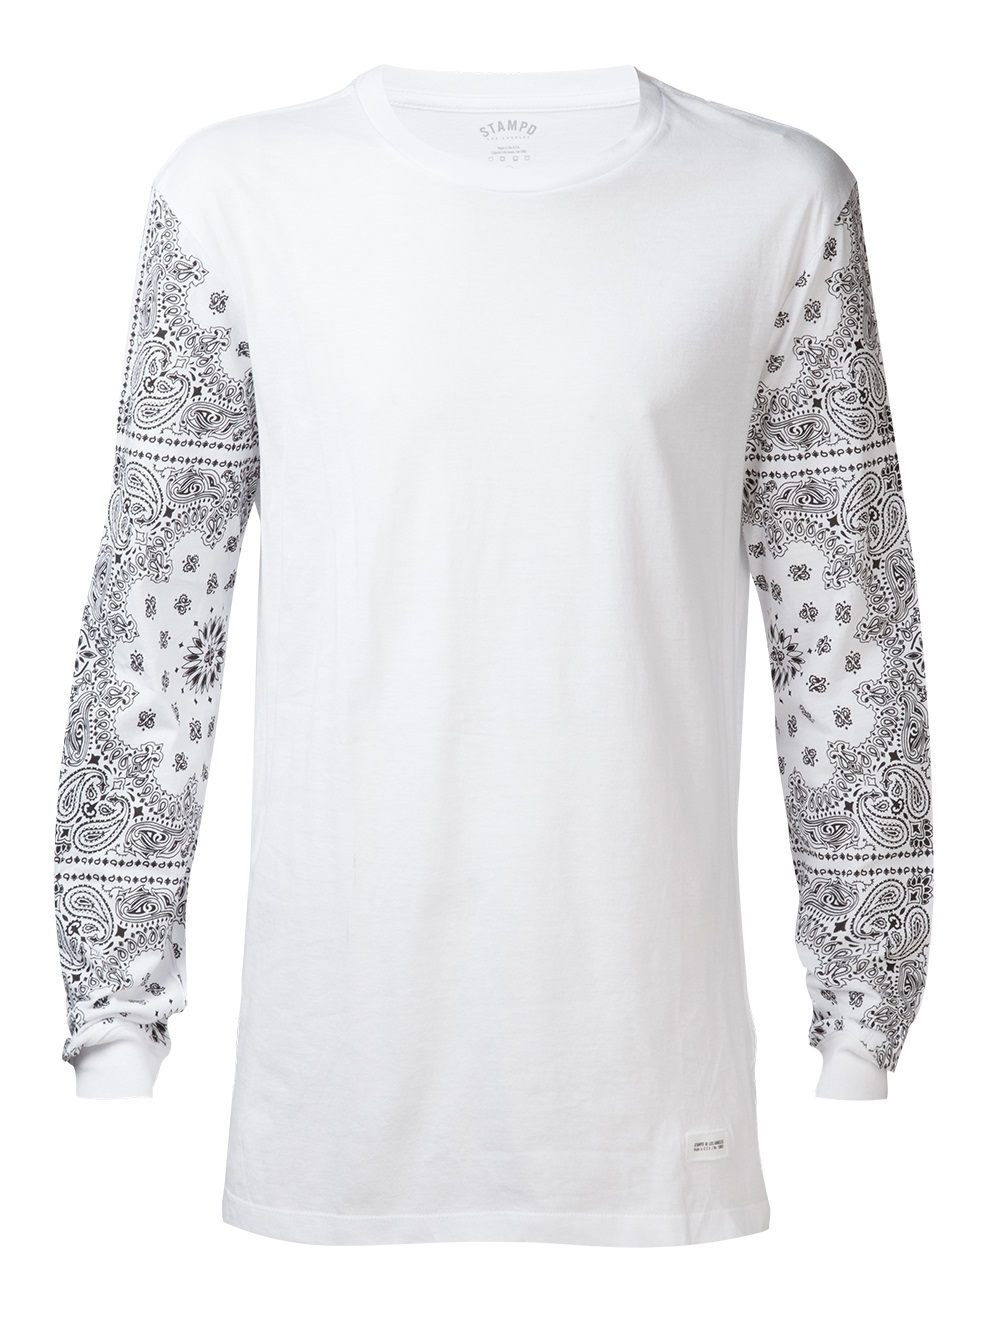 Find great deals on eBay for bandana pattern shirt. Shop with confidence.